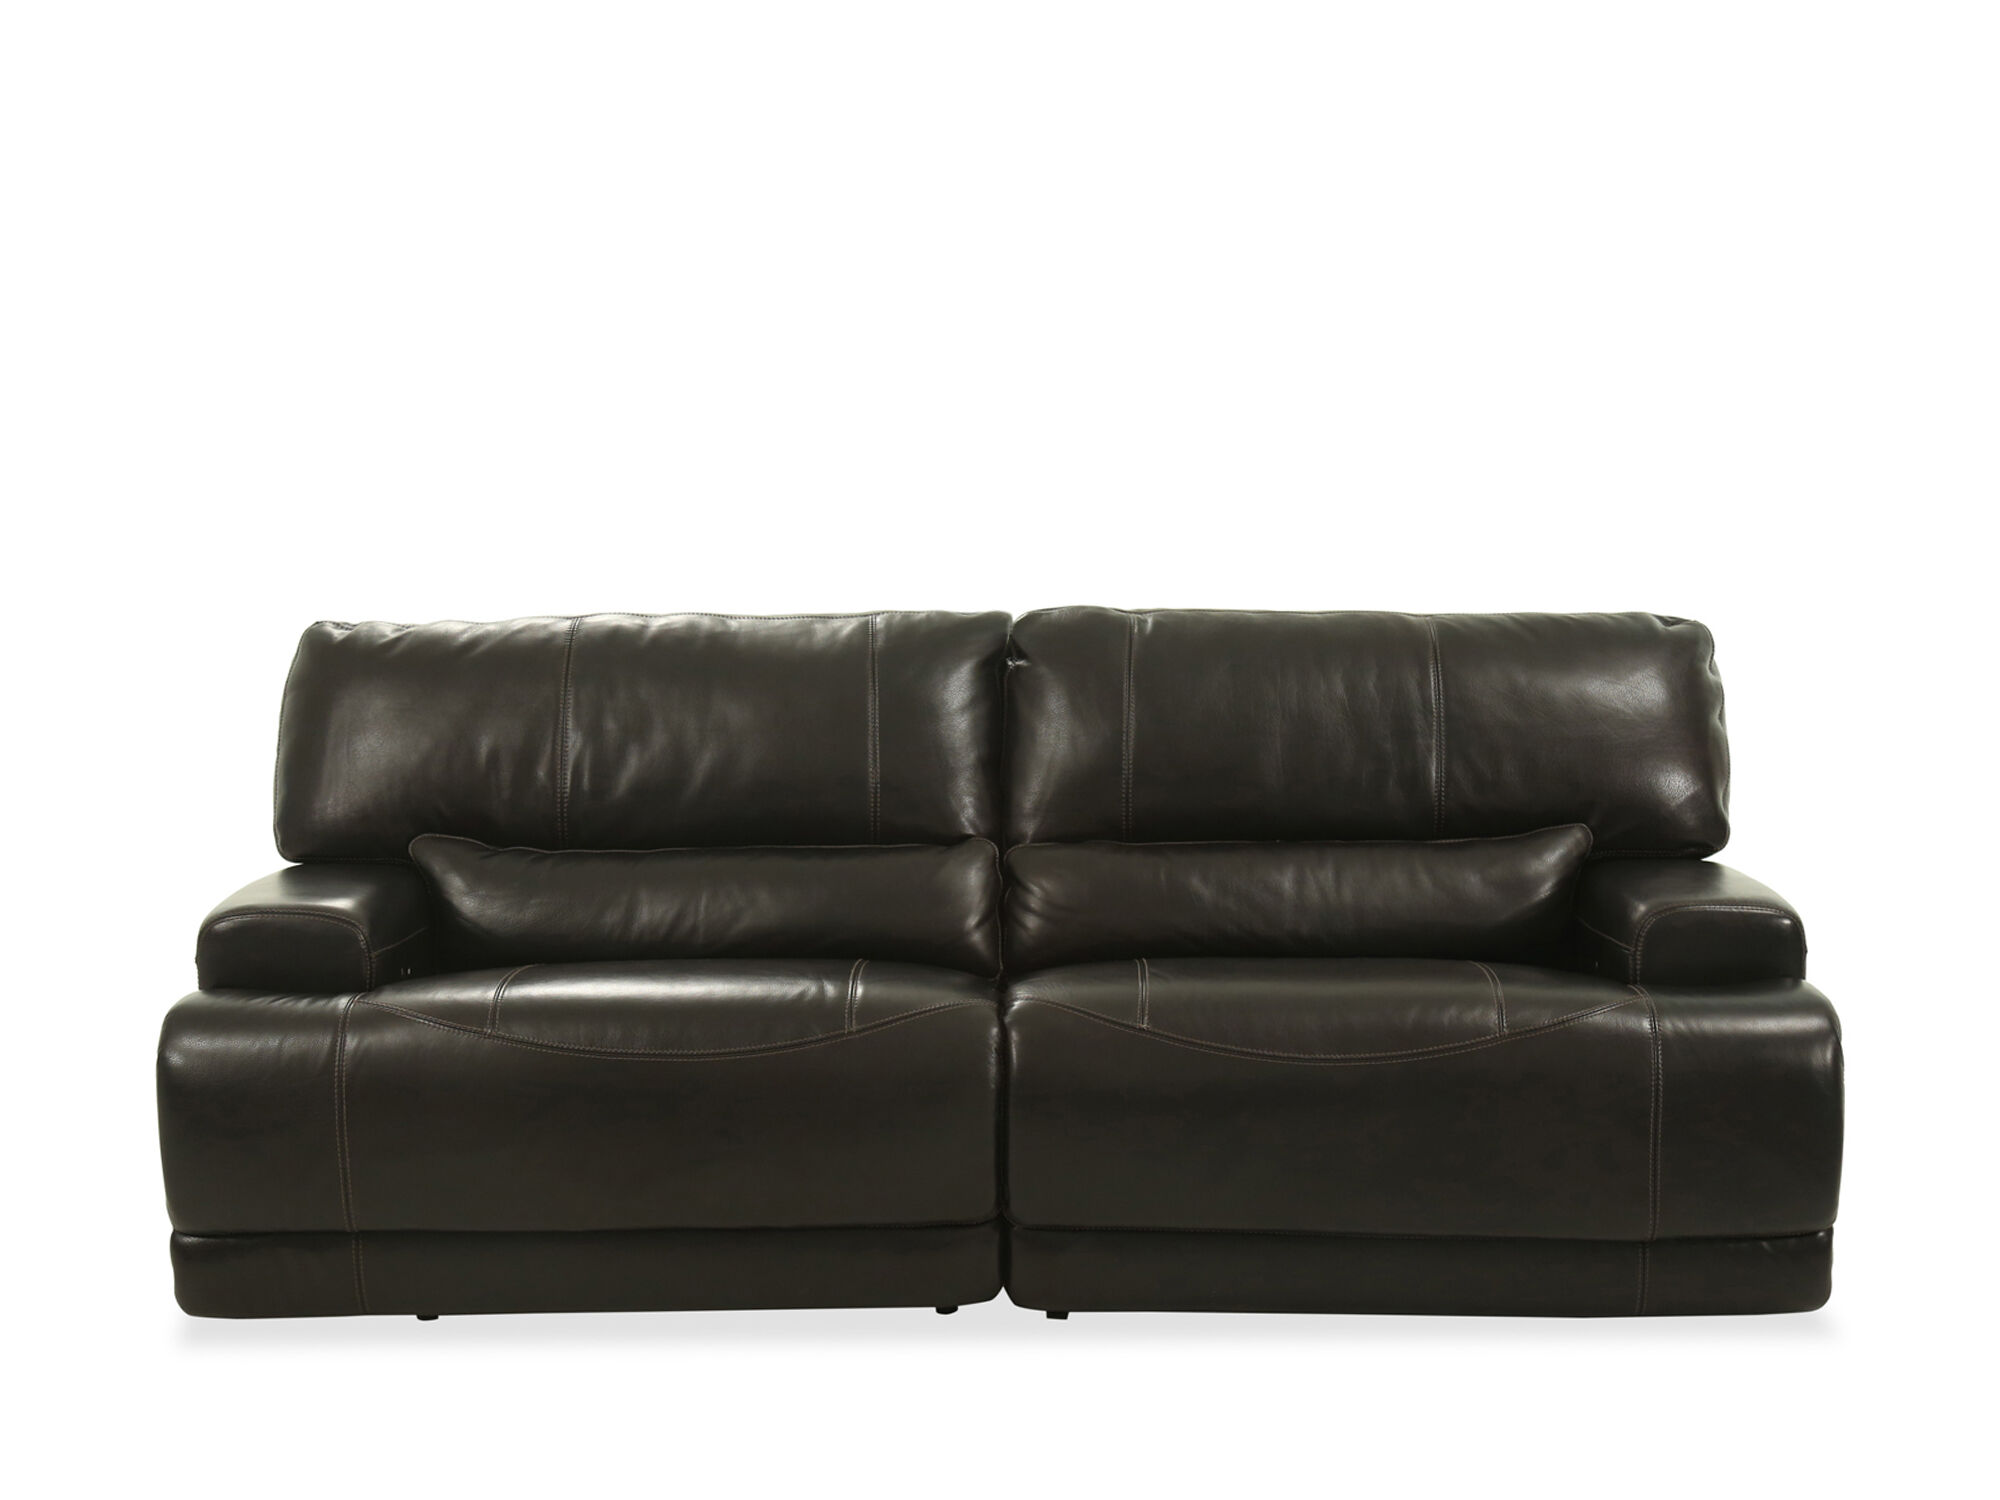 Power Reclining Leather 91 Sofa in Blackberry  Mathis